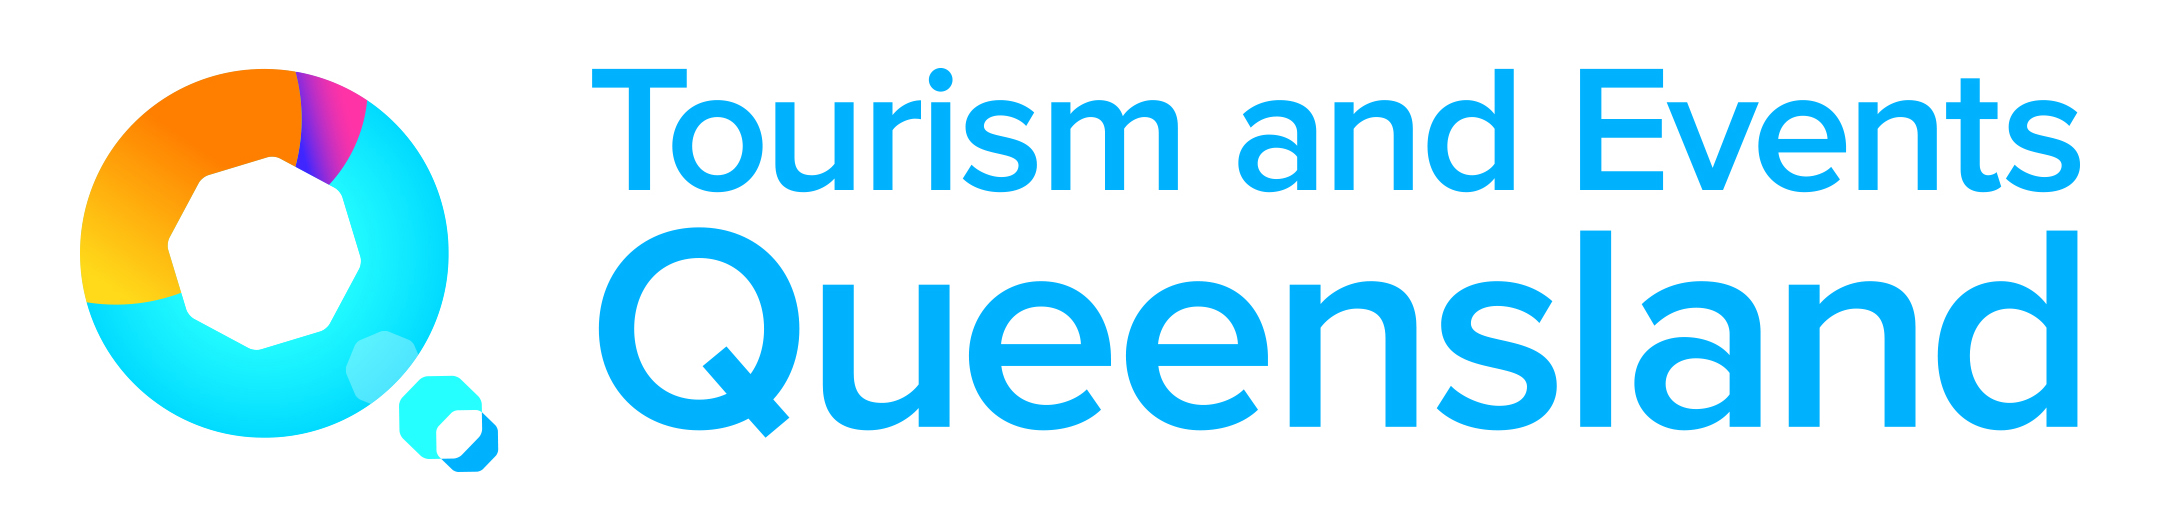 Tourism-and-Events-Queensland.jpg